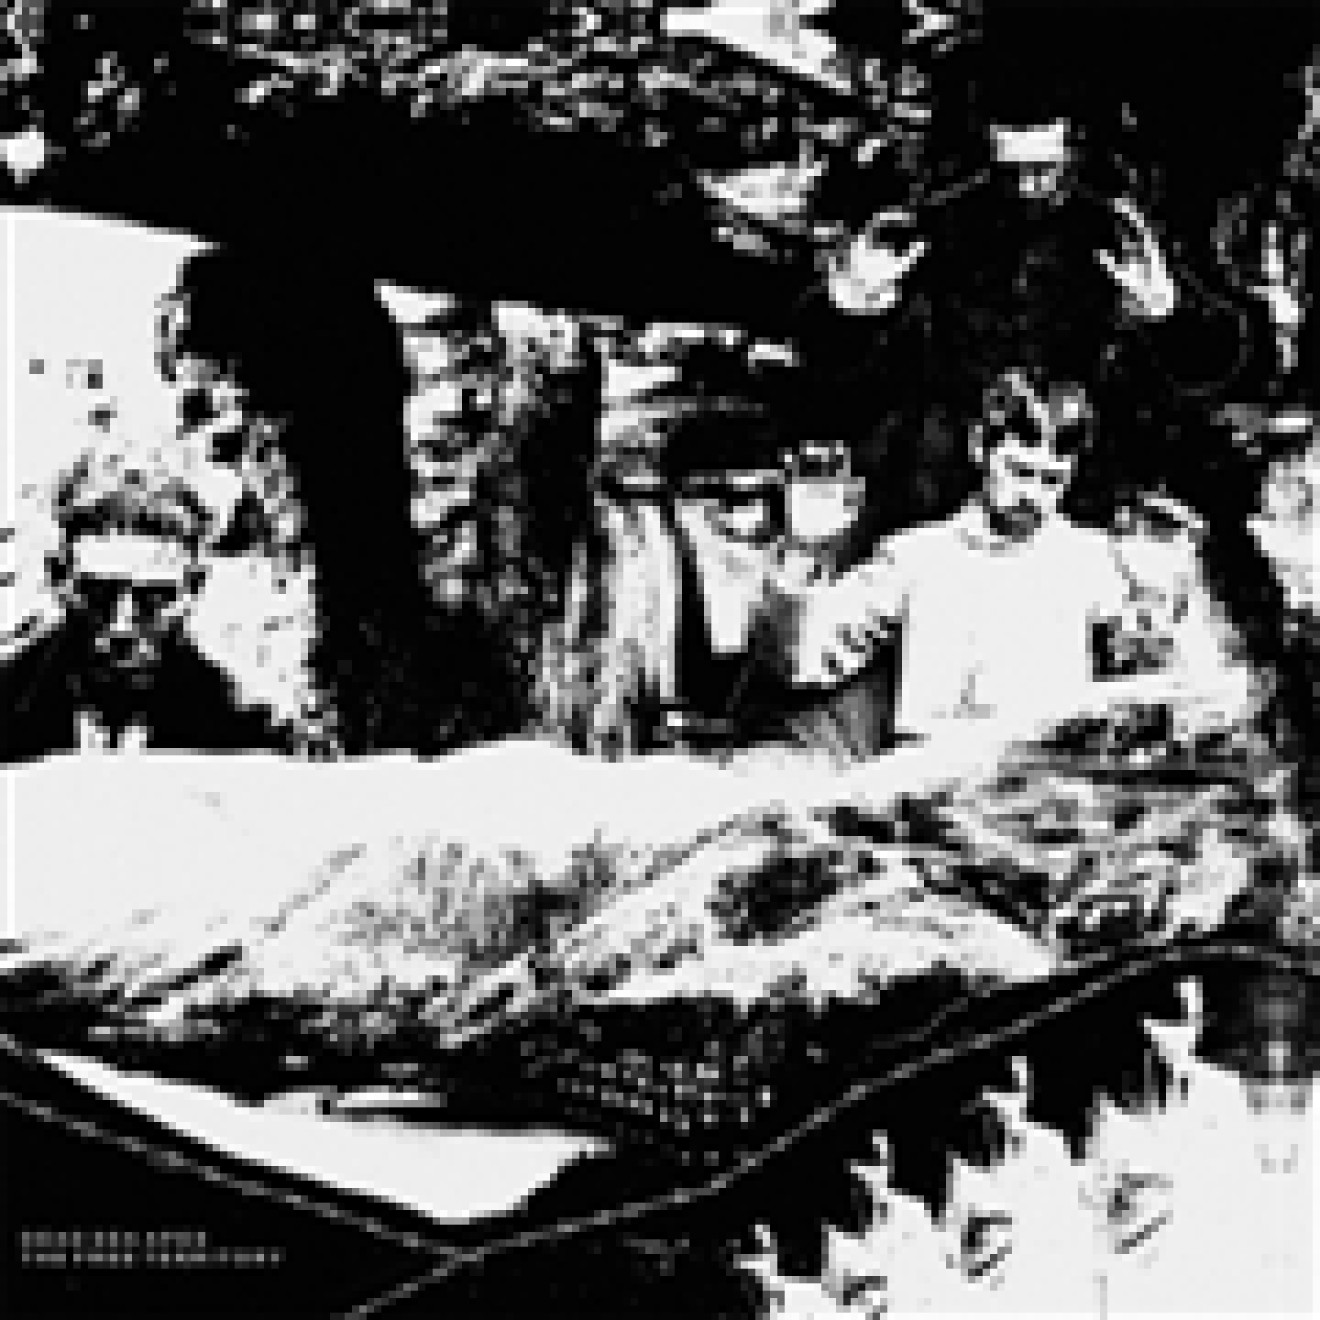 DEAD SEA APES - the free territory 2-LP colour